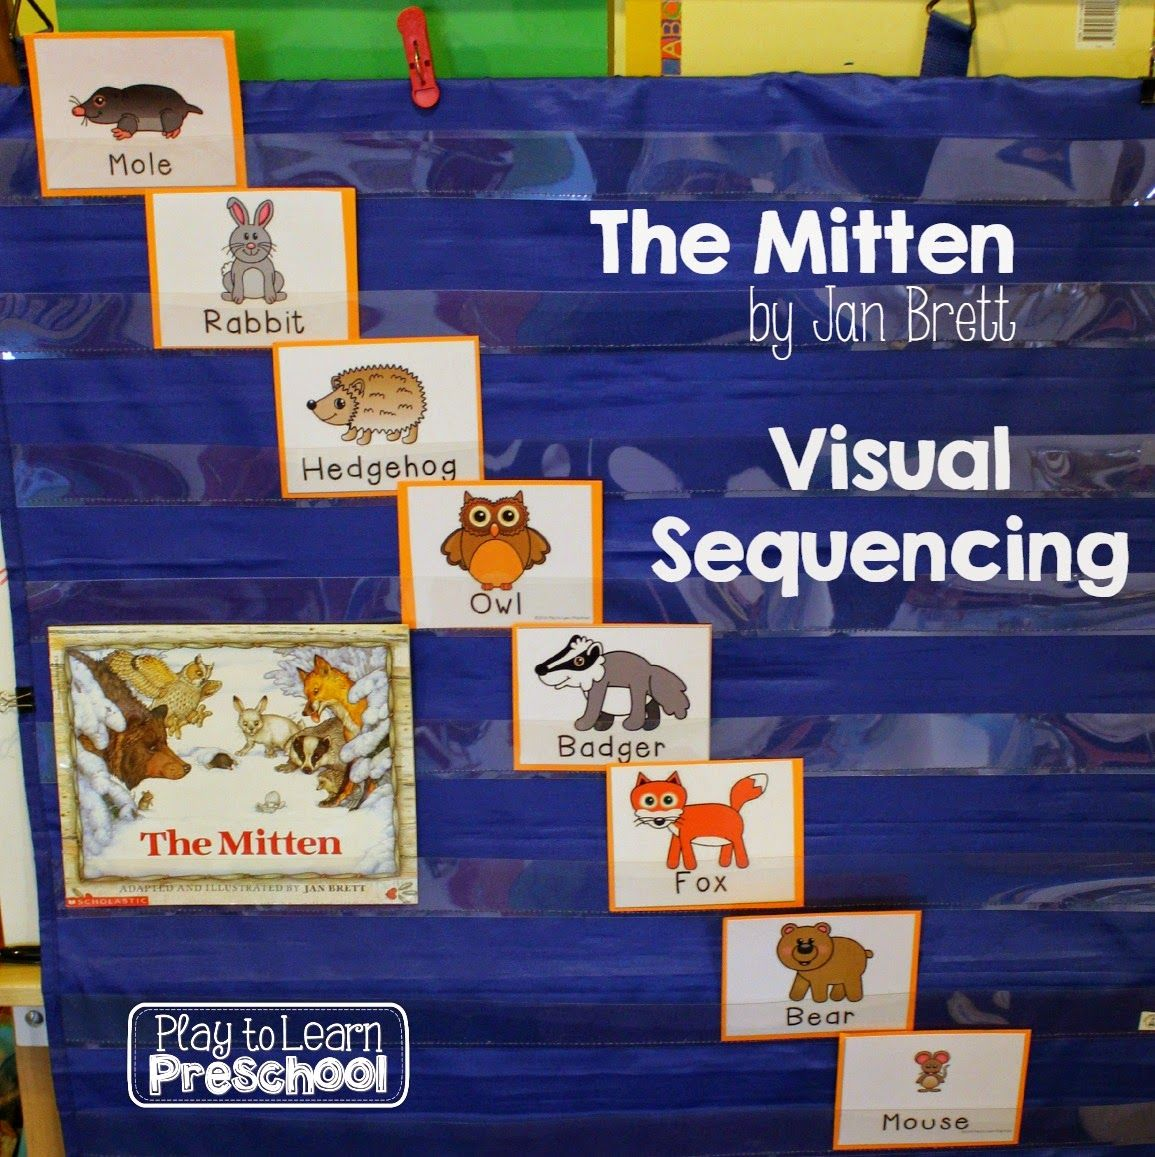 The Mitten Visual Sequencing From Play To Learn Preschool